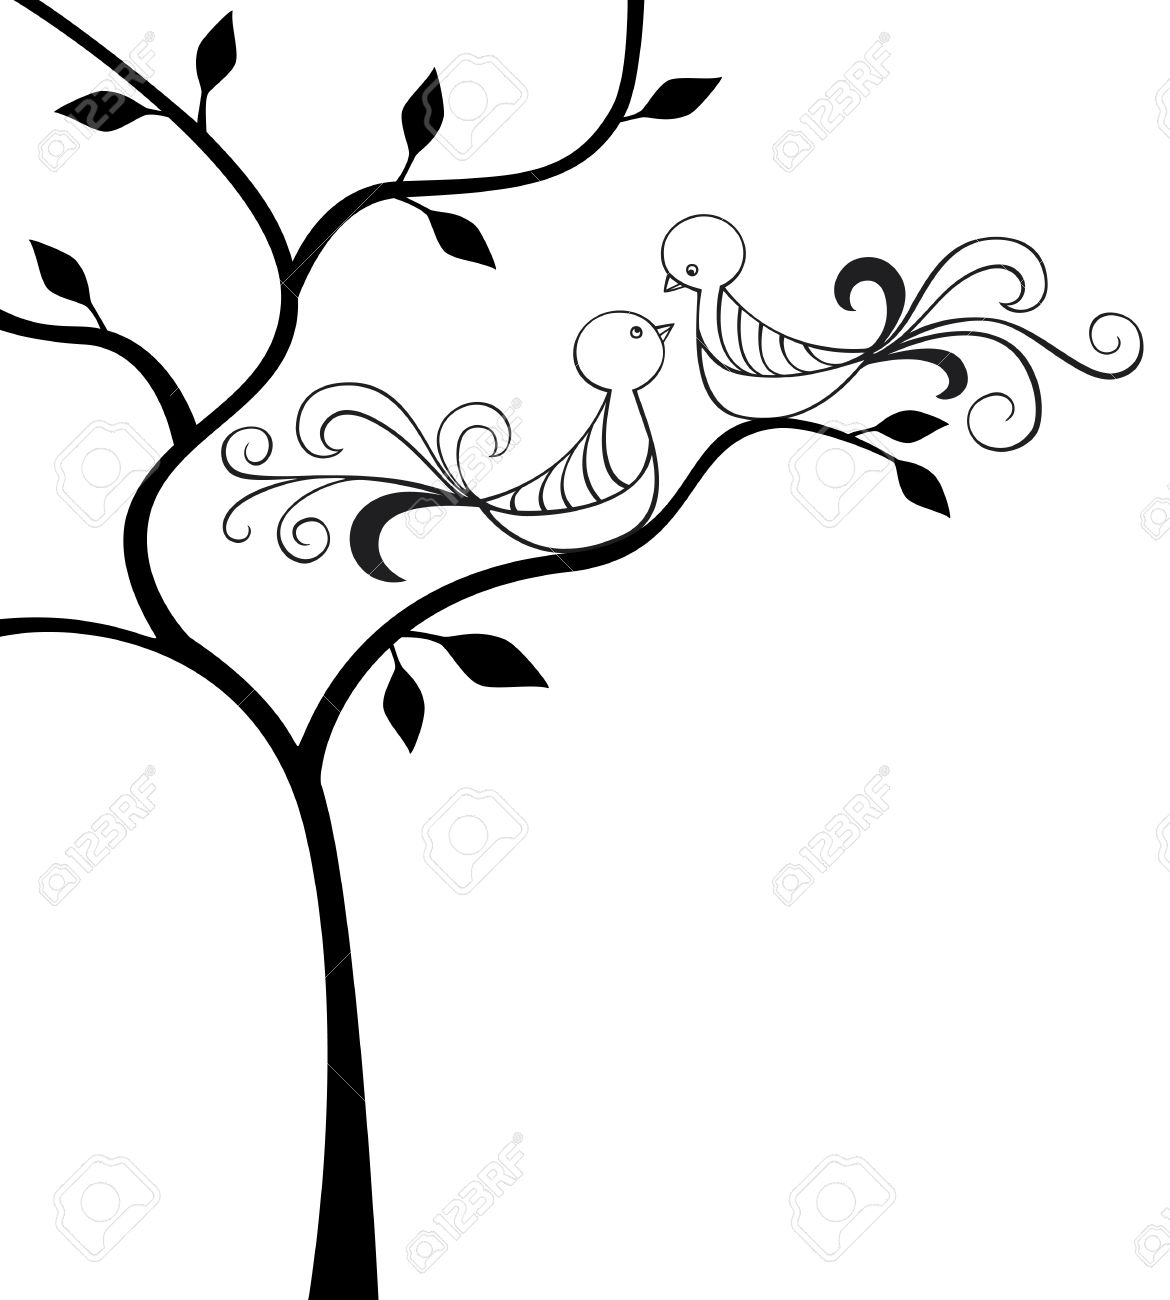 1170x1300 Clipart Love Birds Tree Silhouette Collection